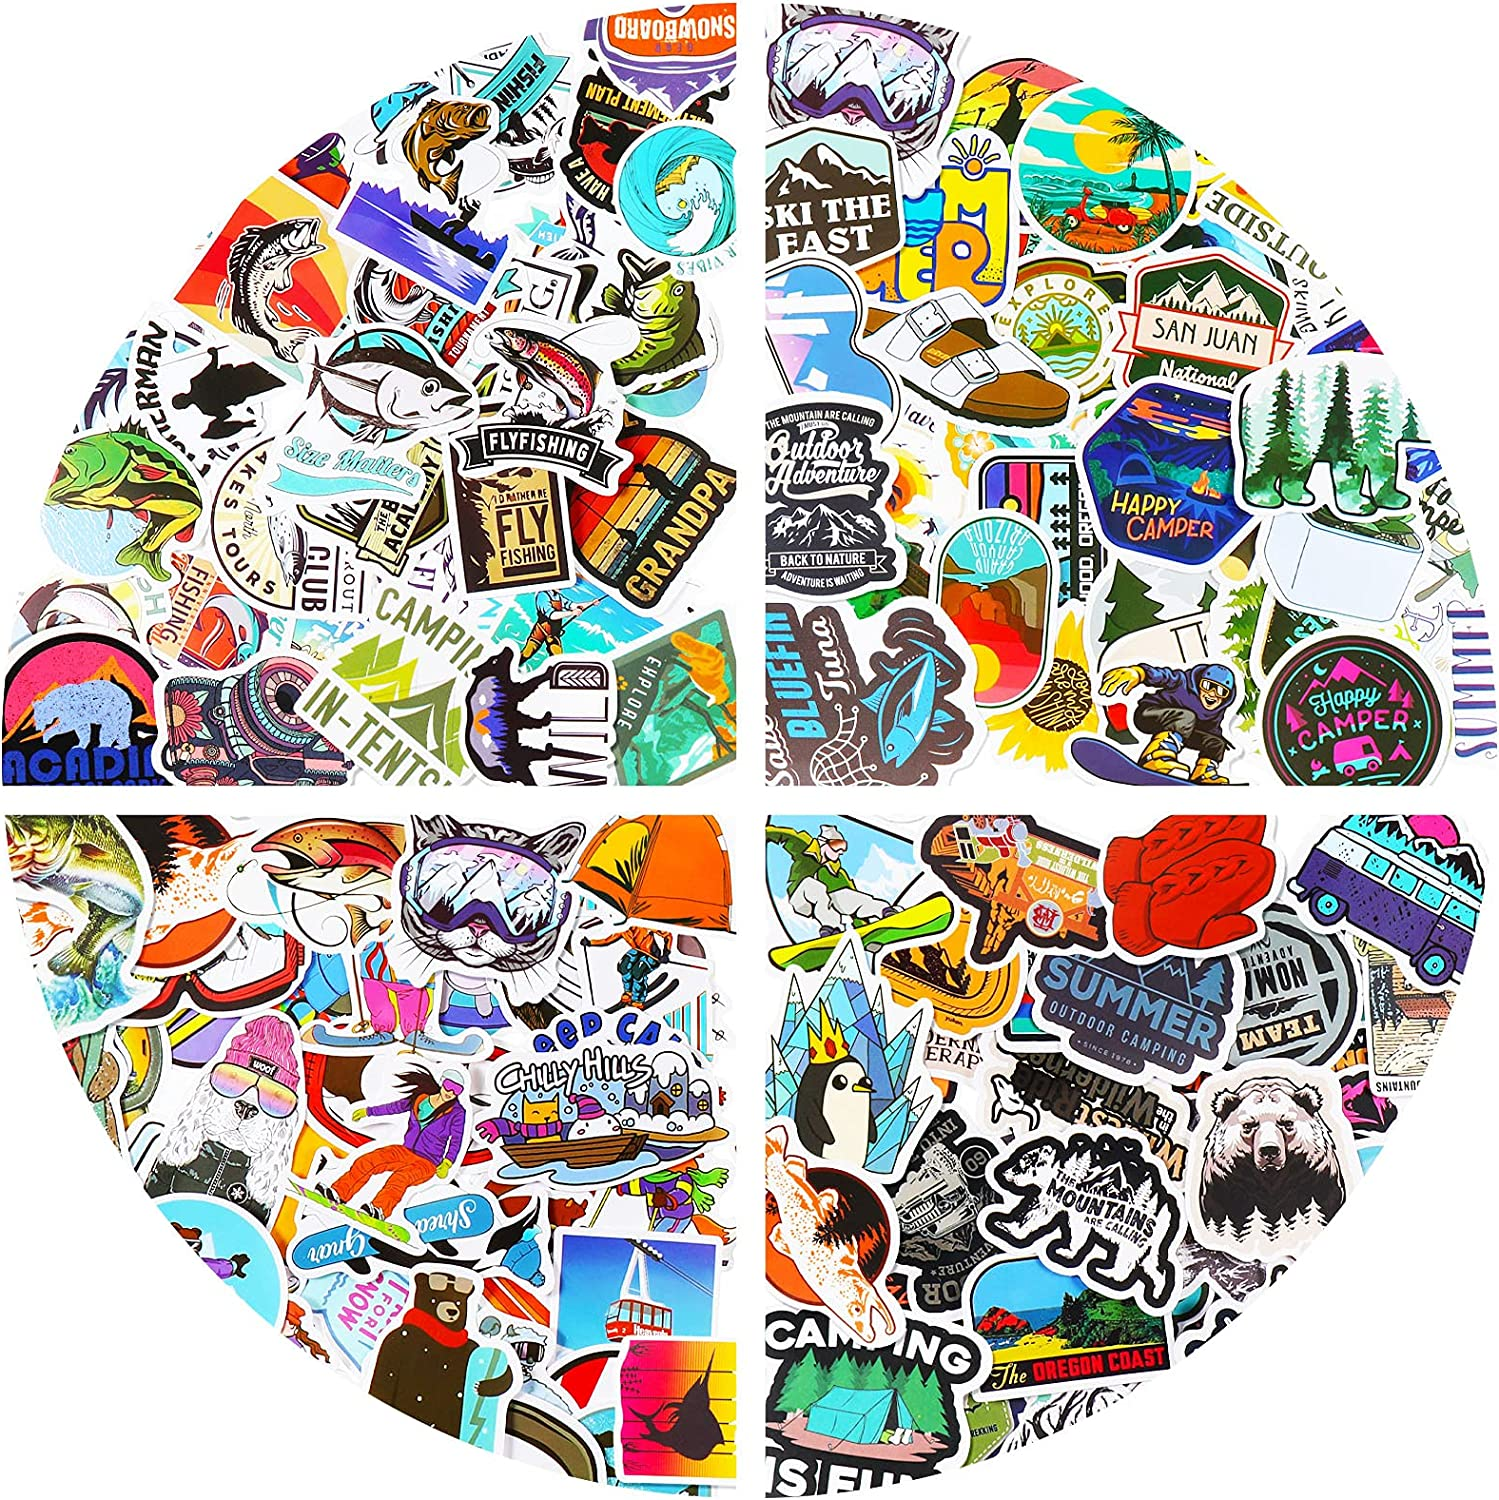 200 Pieces Outdoor Adventure Stickers Wilderness Nature Hiking Camping Travel Waterproof Vinyl Stickers for Laptop Water Bottle Car Luggage Bike Skateboard